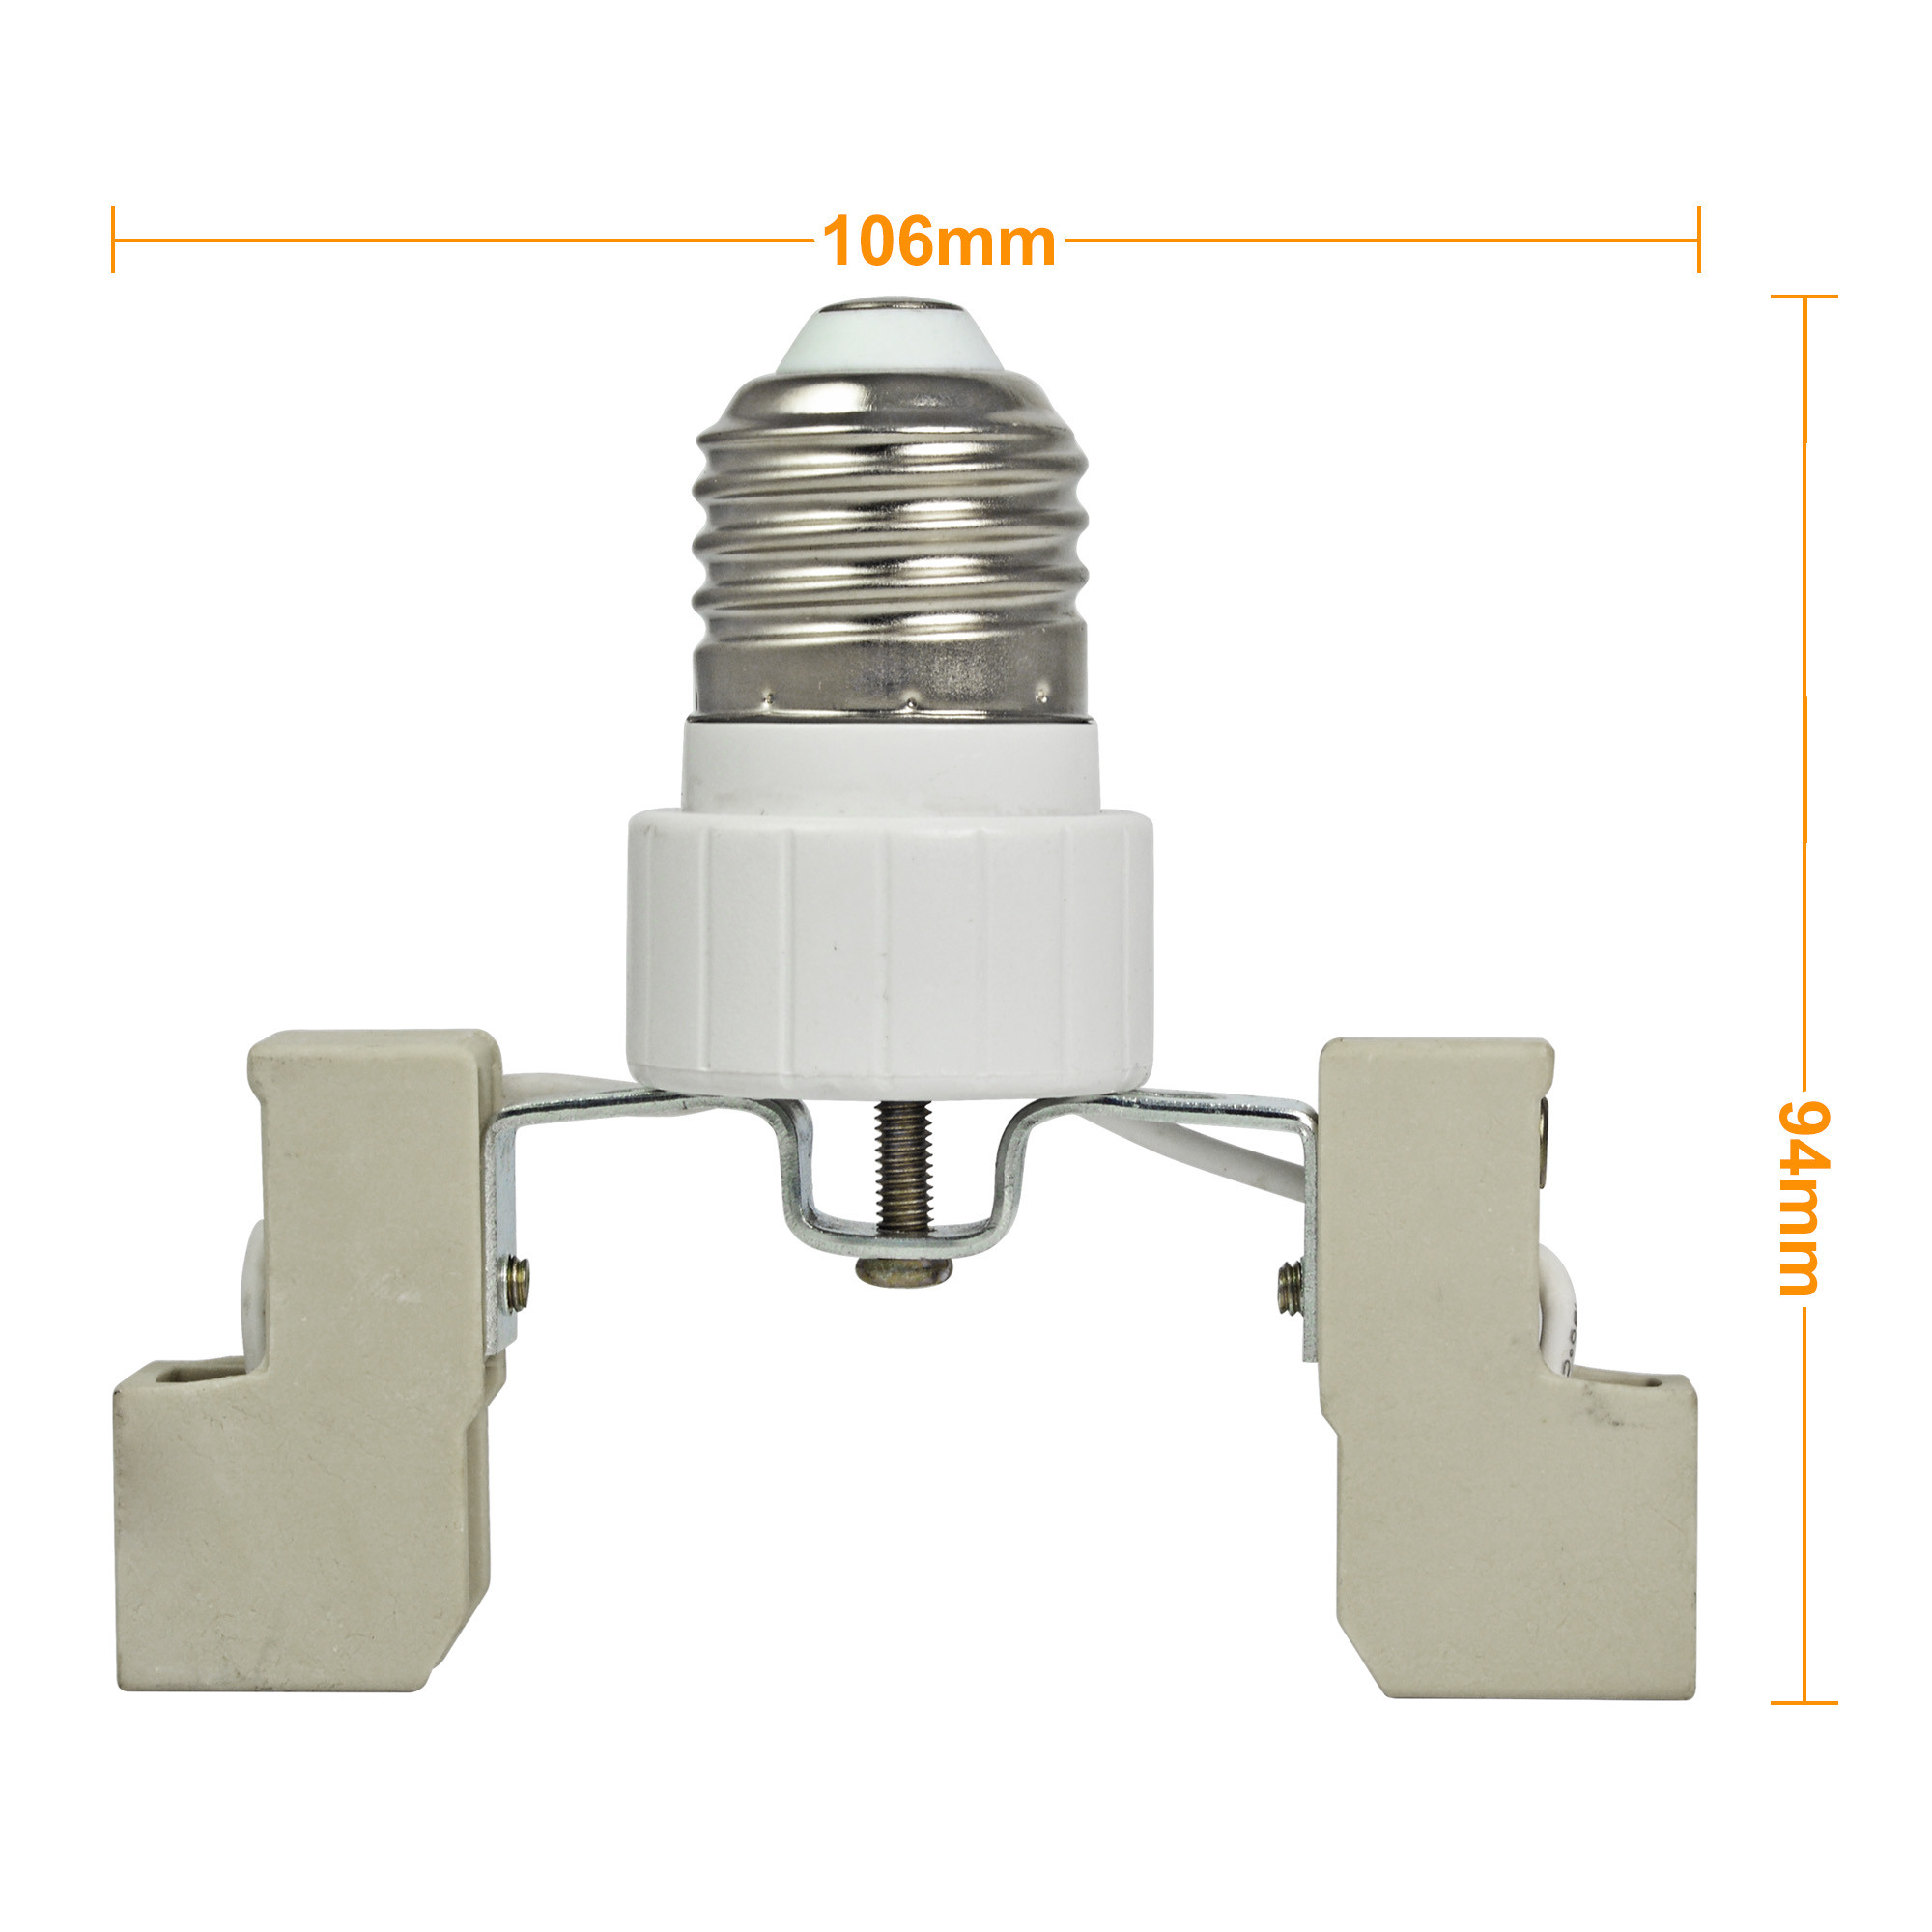 E27 to r7s 78mm base led light lamp bulb adapter converter for Lampadina r7s led 78mm